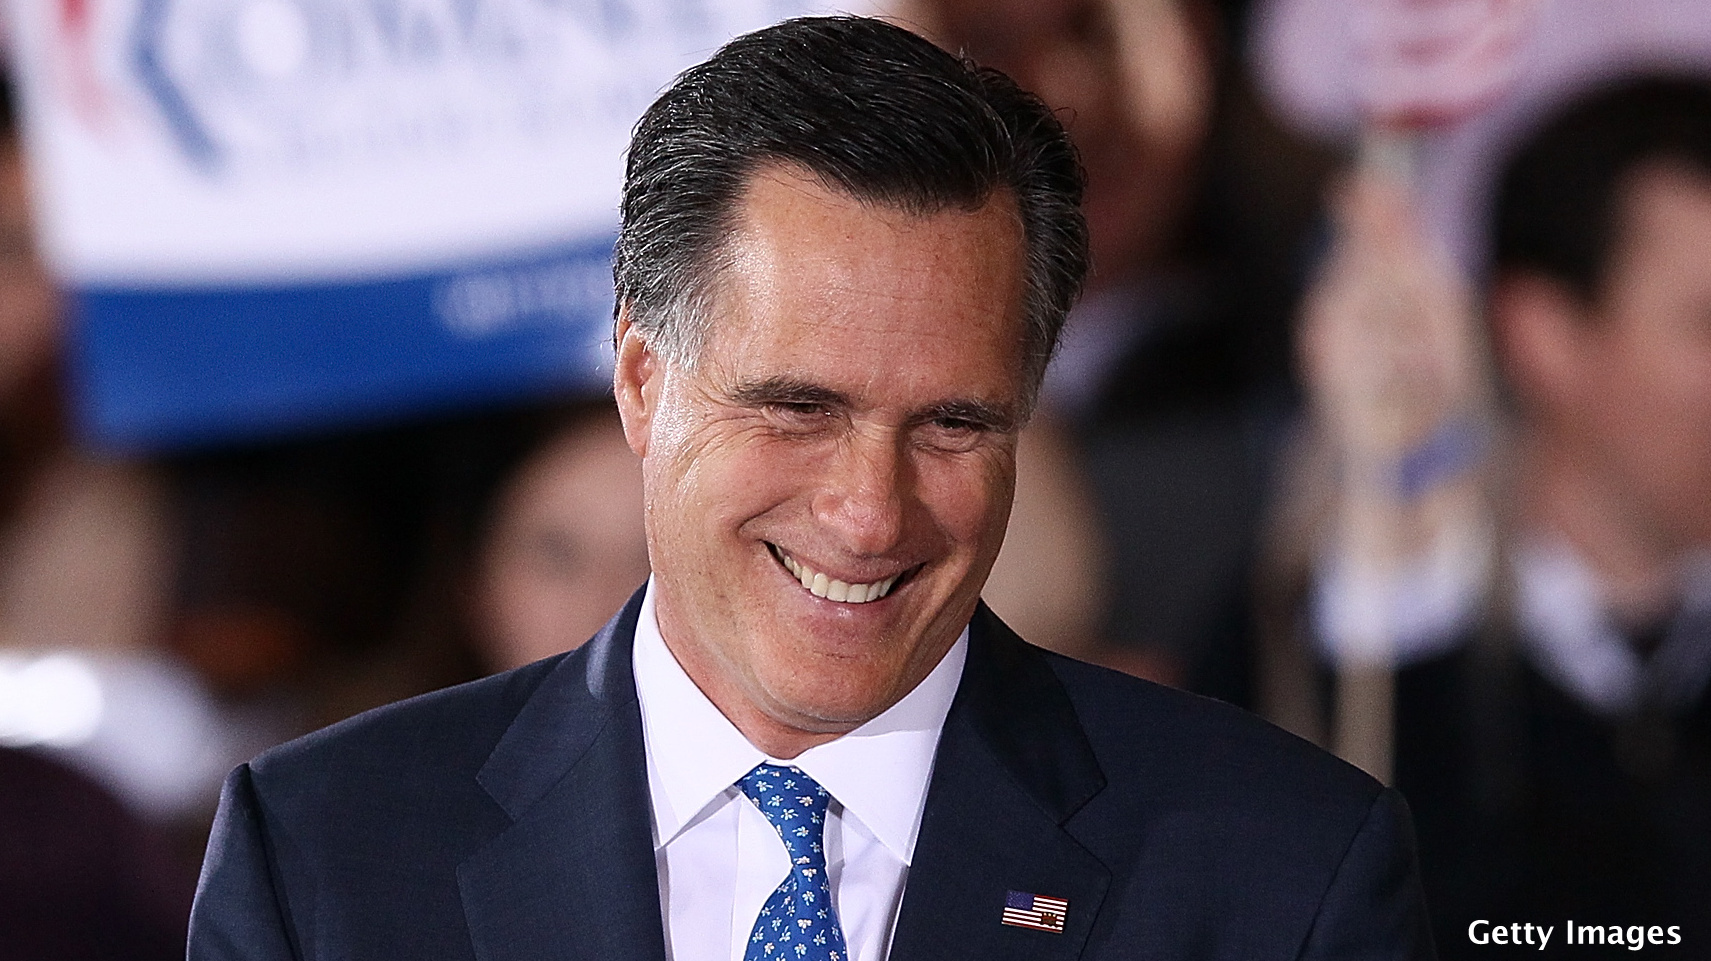 Another poll indicates positive view of Romney on rise